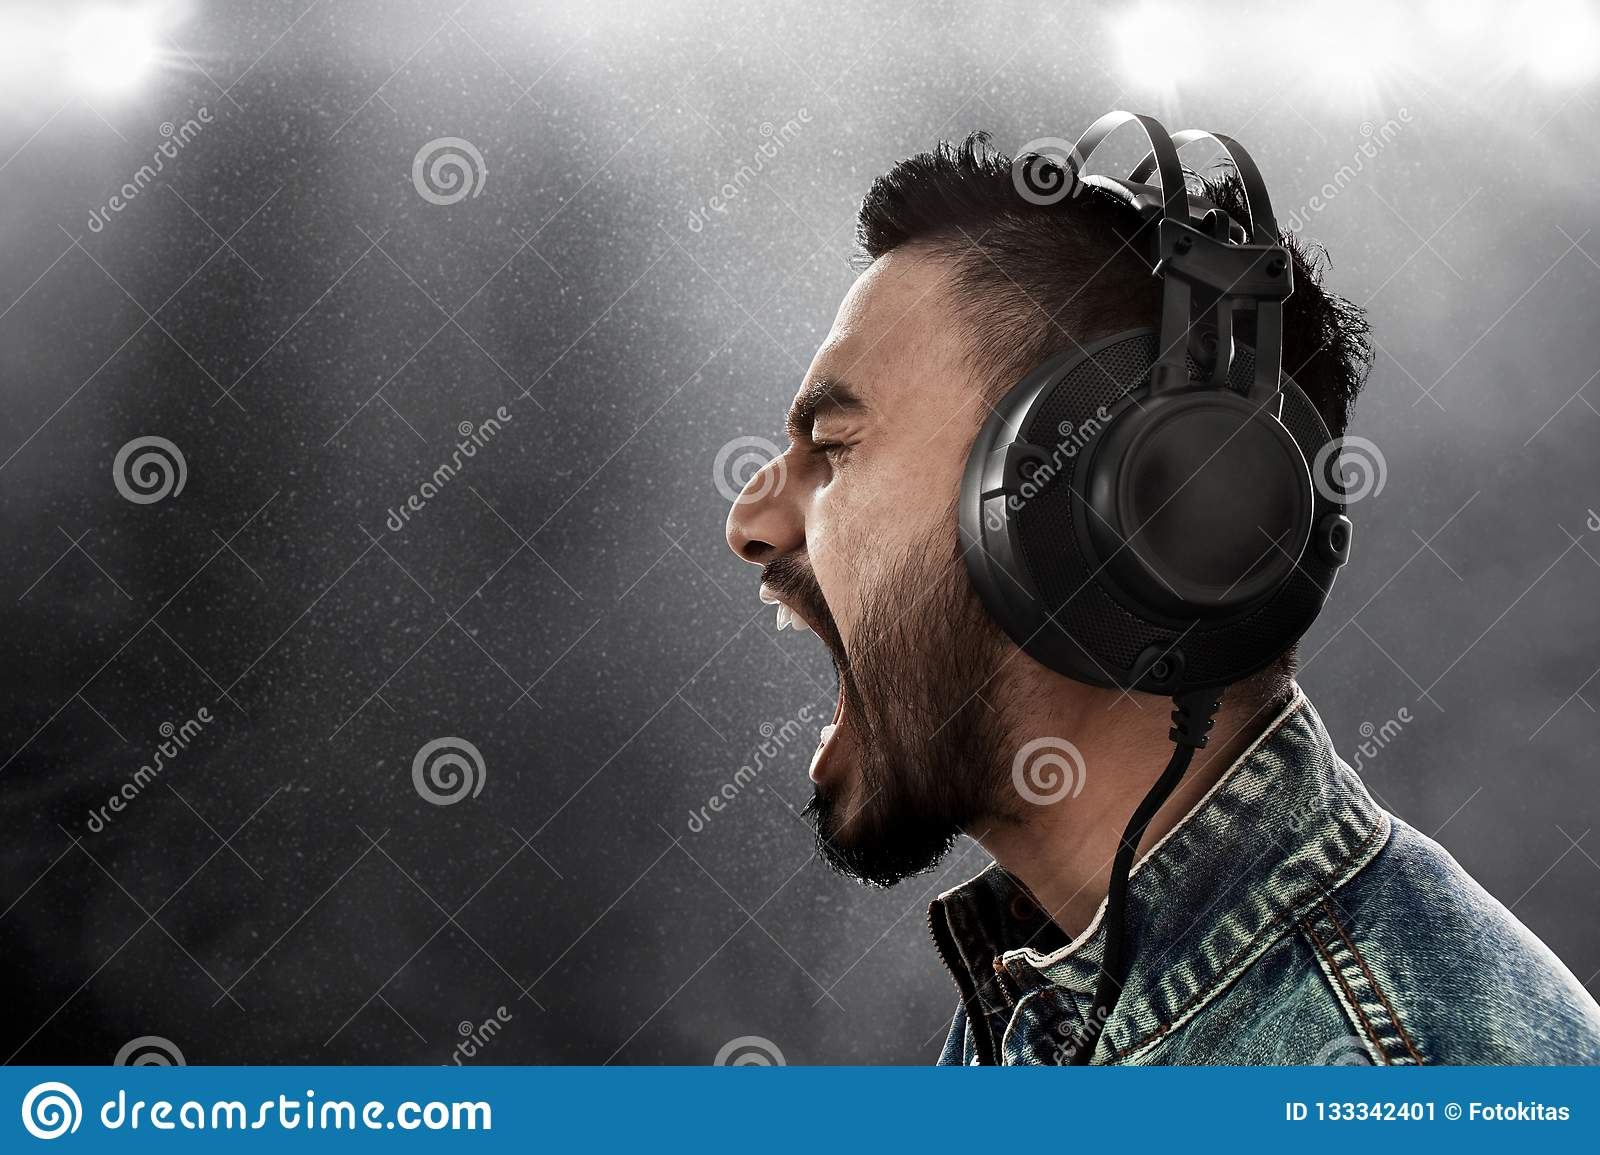 man listening music wearing